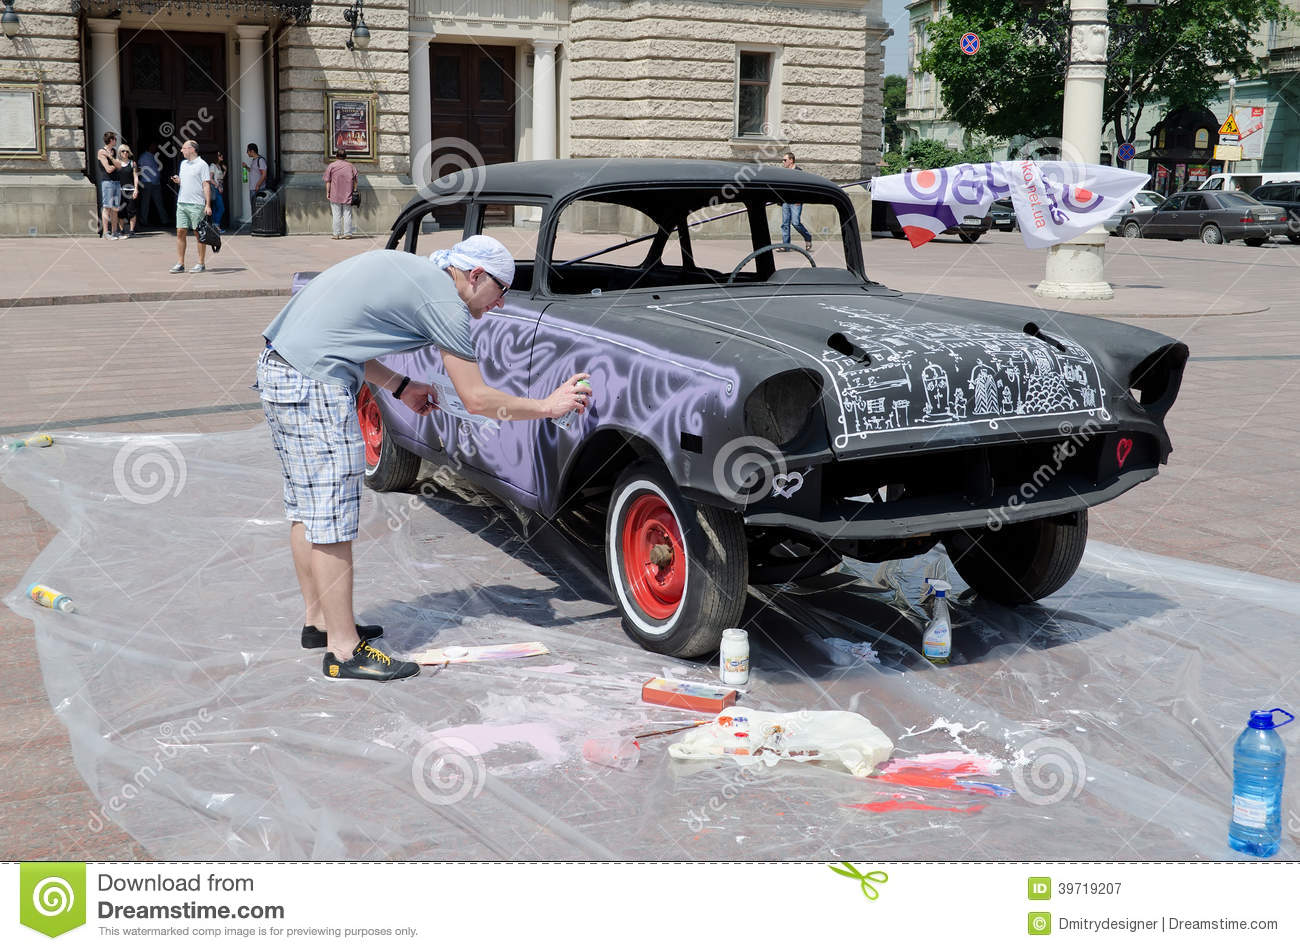 144 airbrush cars photos free royalty free stock photos from dreamstime